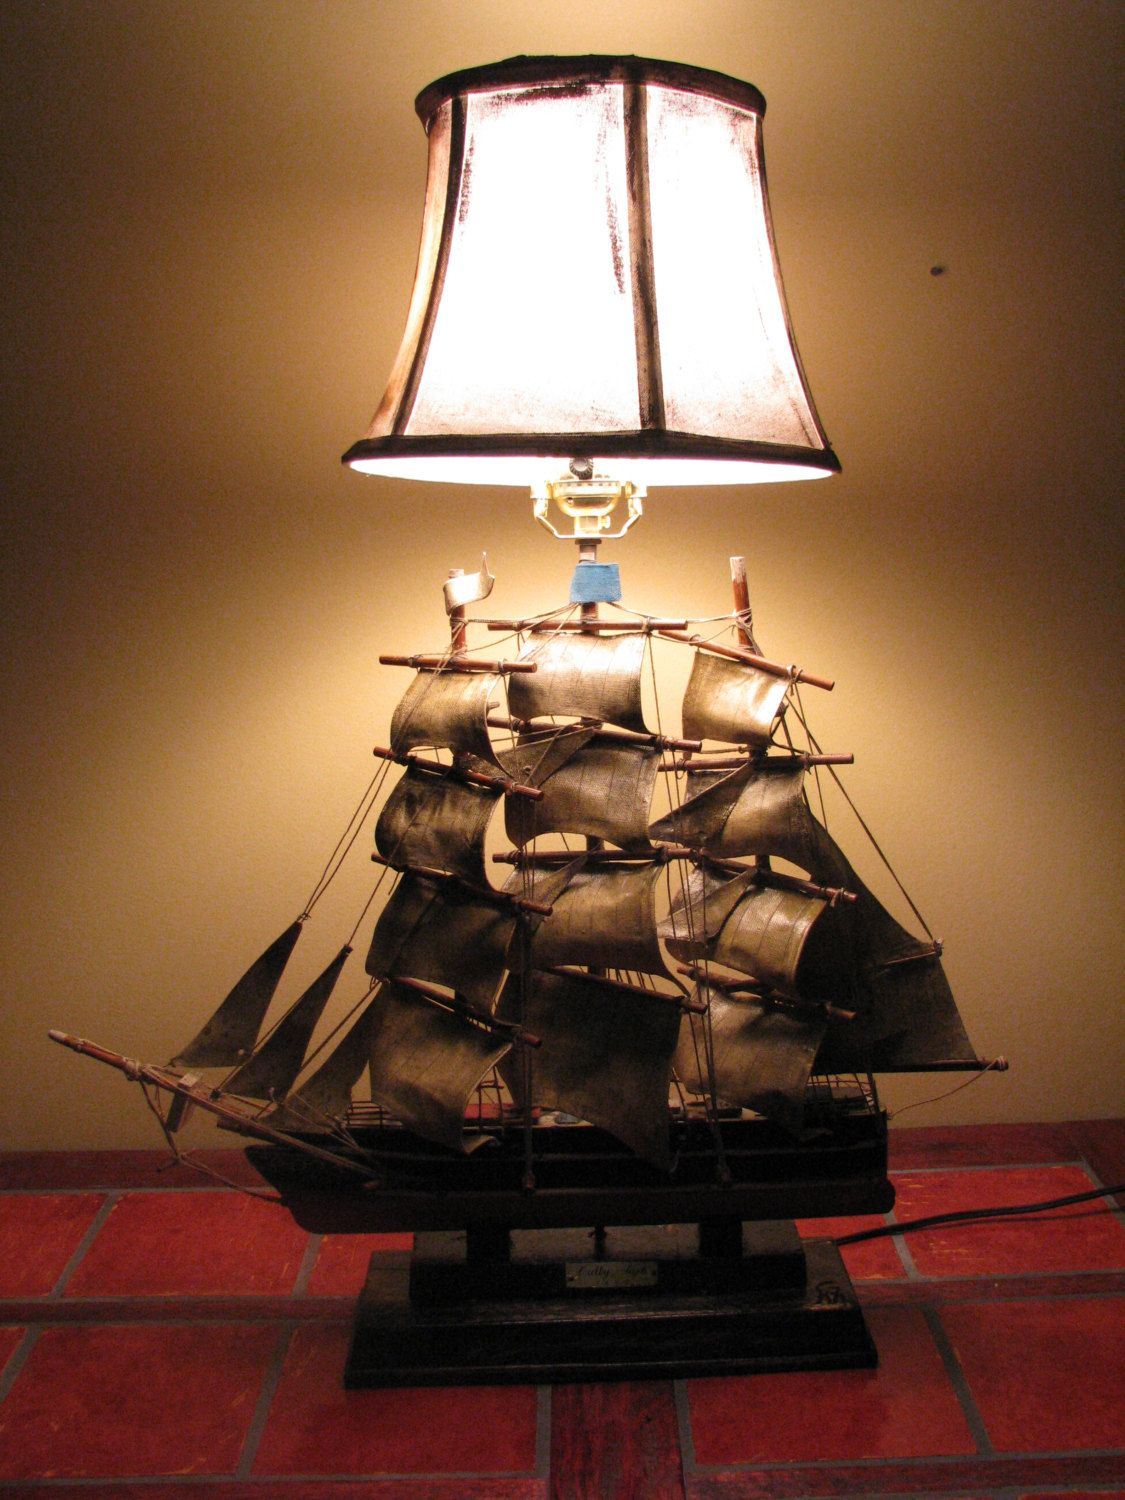 Wondrous Cutty Sark Ship Table Lamp Upcycled Ship Lamp Vintage Ship Interior Design Ideas Clesiryabchikinfo